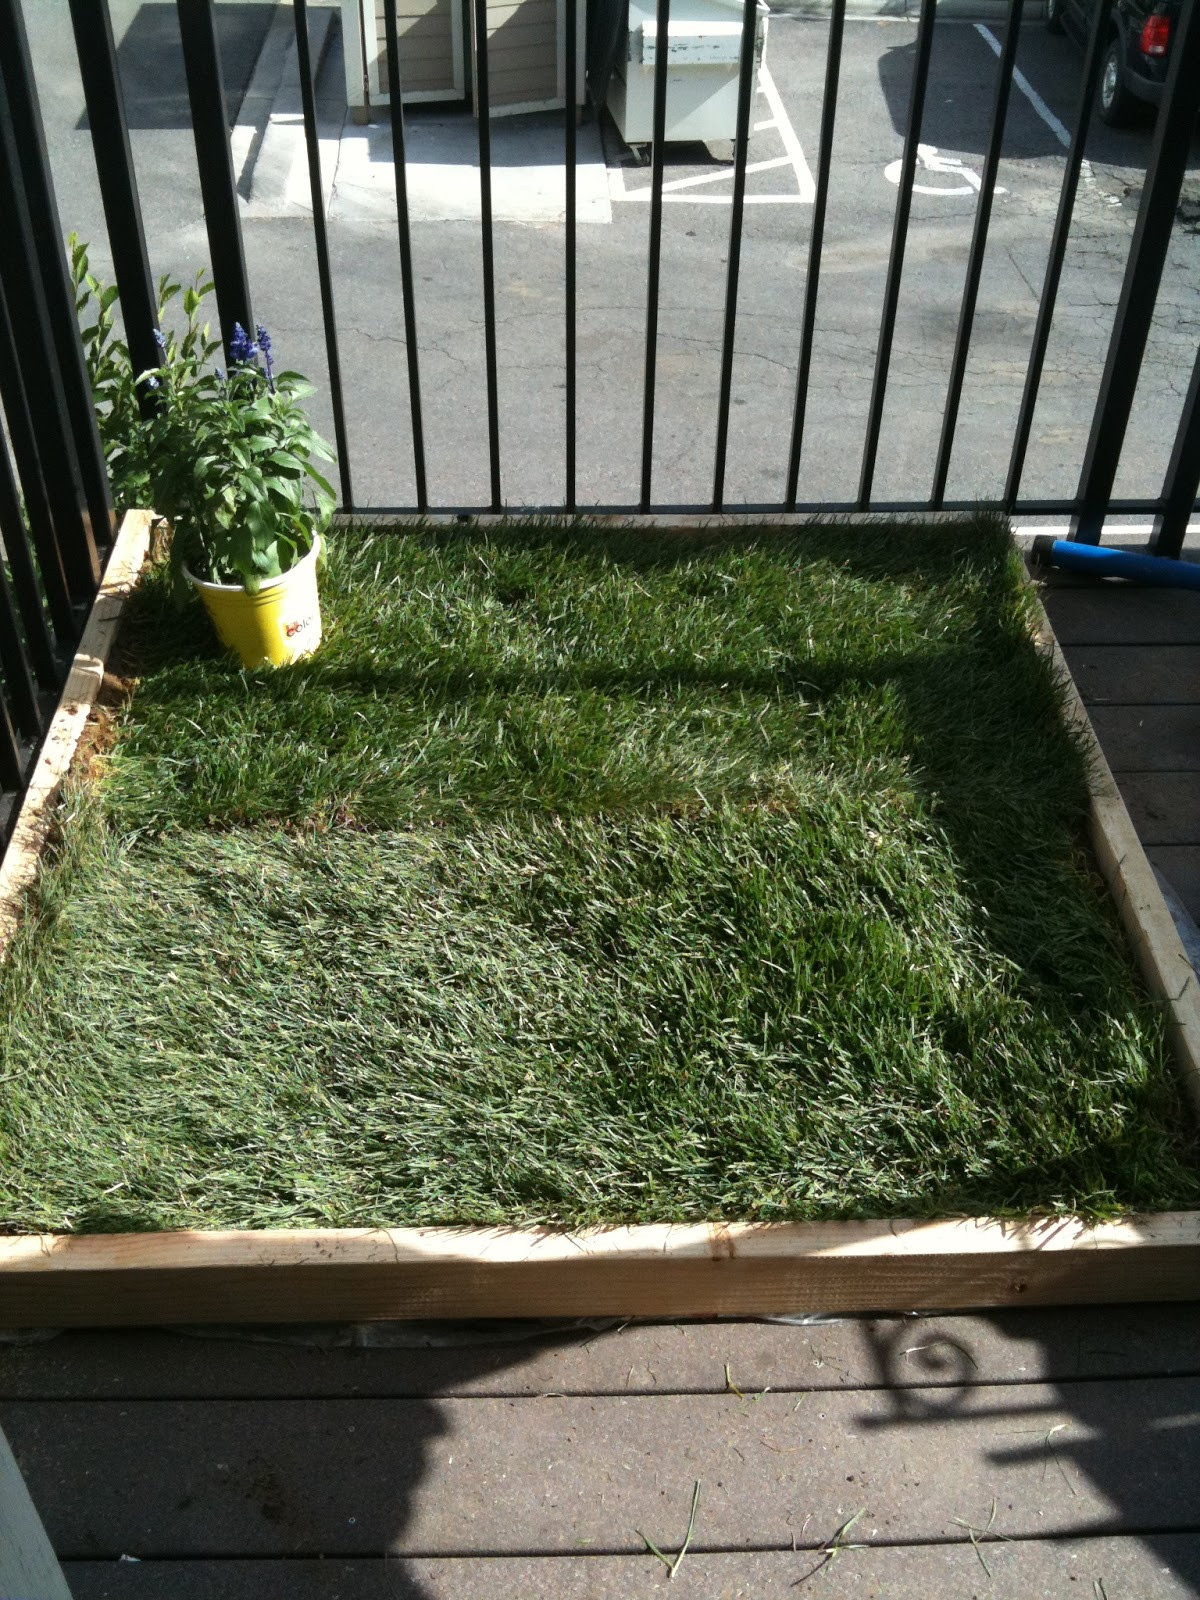 Best ideas about Patio Dog Potty DIY . Save or Pin super dog charlie pants and me Dog Potty for Patio Build Now.